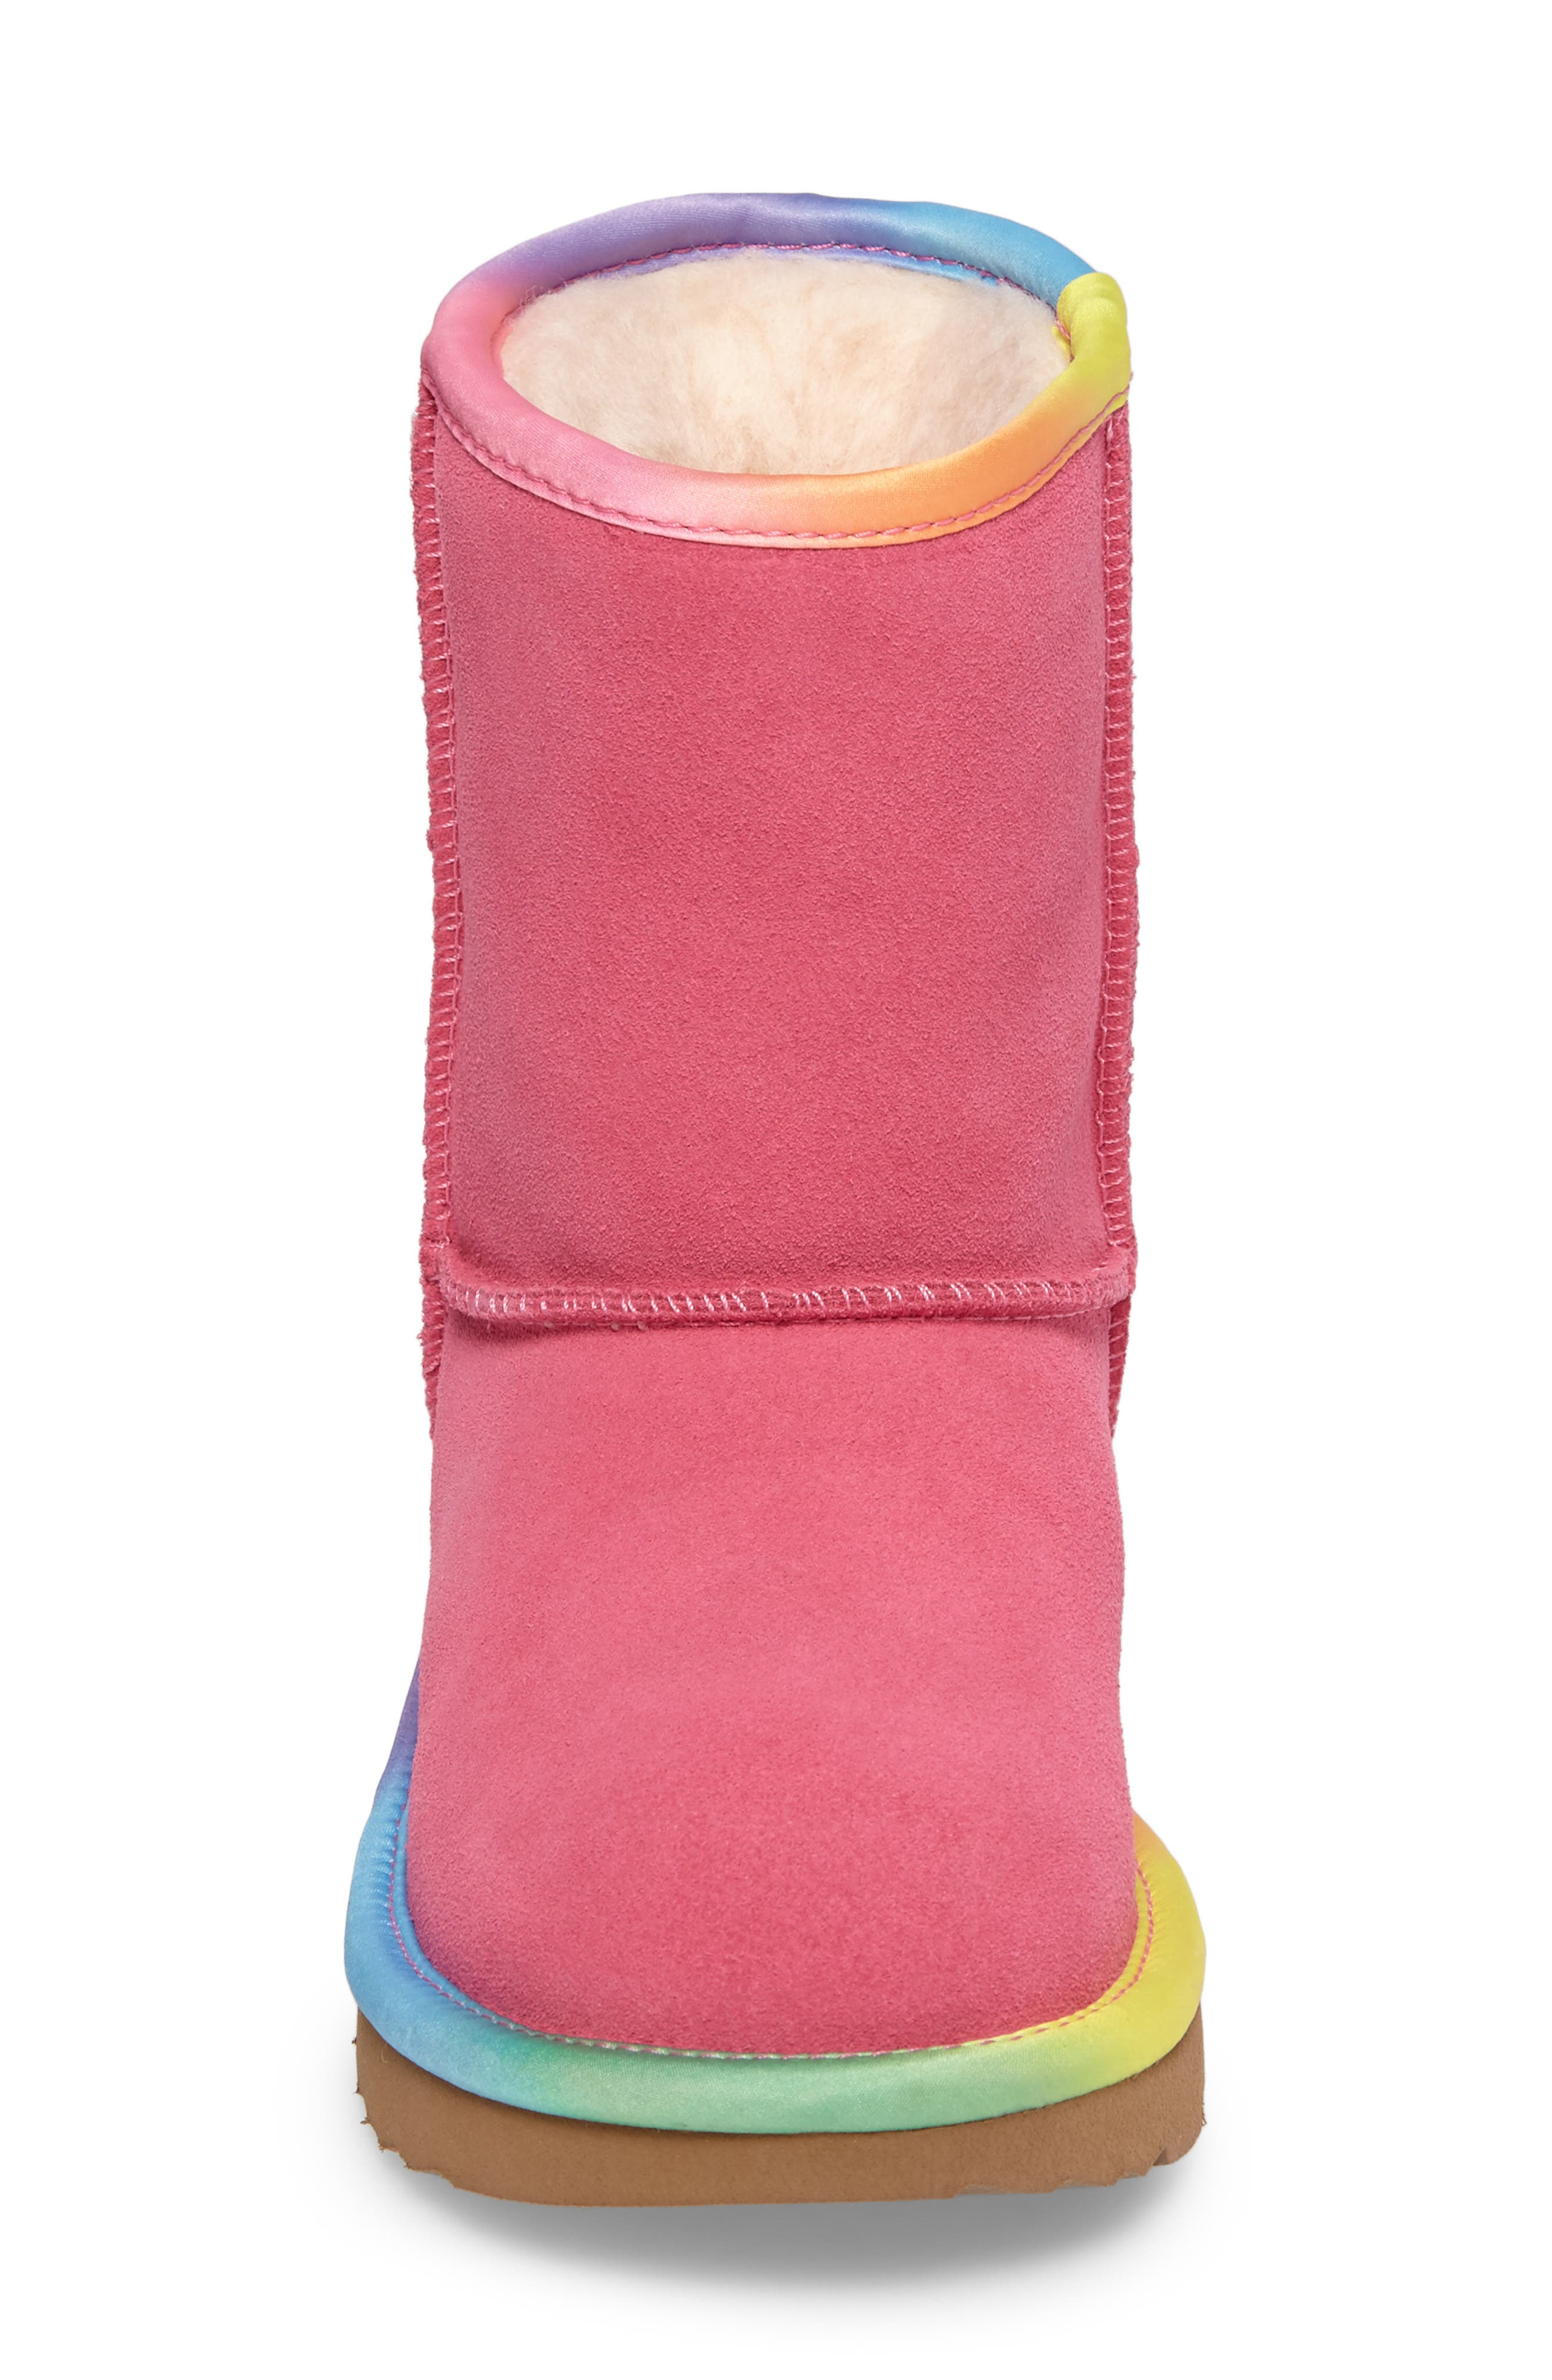 Alternate Image 4  - UGG® Classic Short II Water-Resistant Genuine Shearling Rainbow Boot (Walker, Toddler, Little Kid & Big Kid)